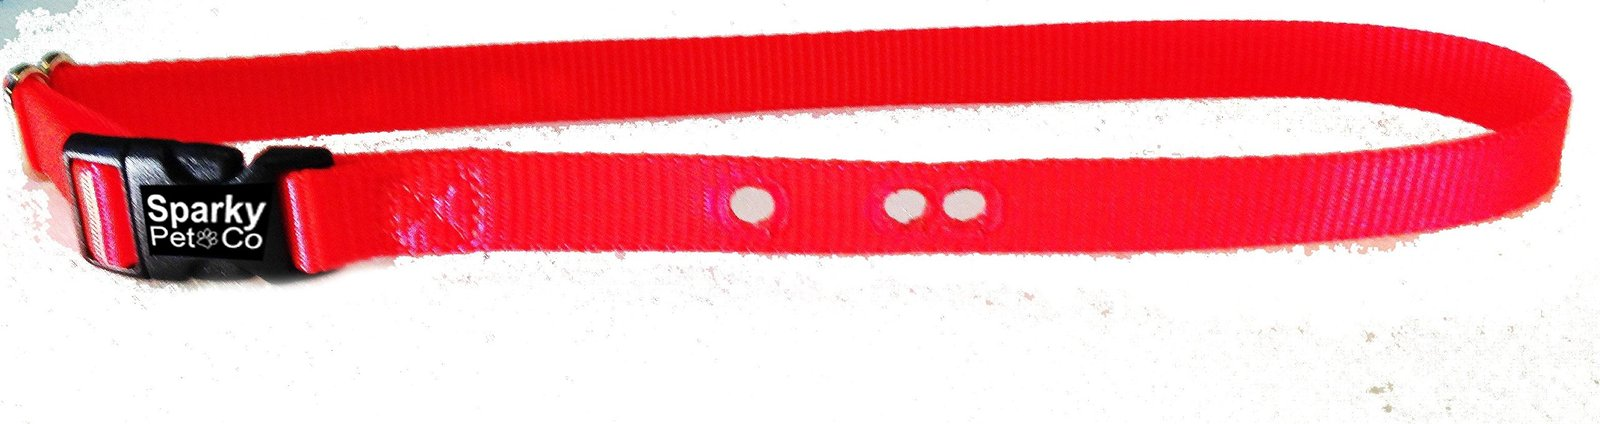 "Sparky PetCo Petsafe Compatible 3/4"" Neon Orange 3 Hole Replacement Dog Strap"